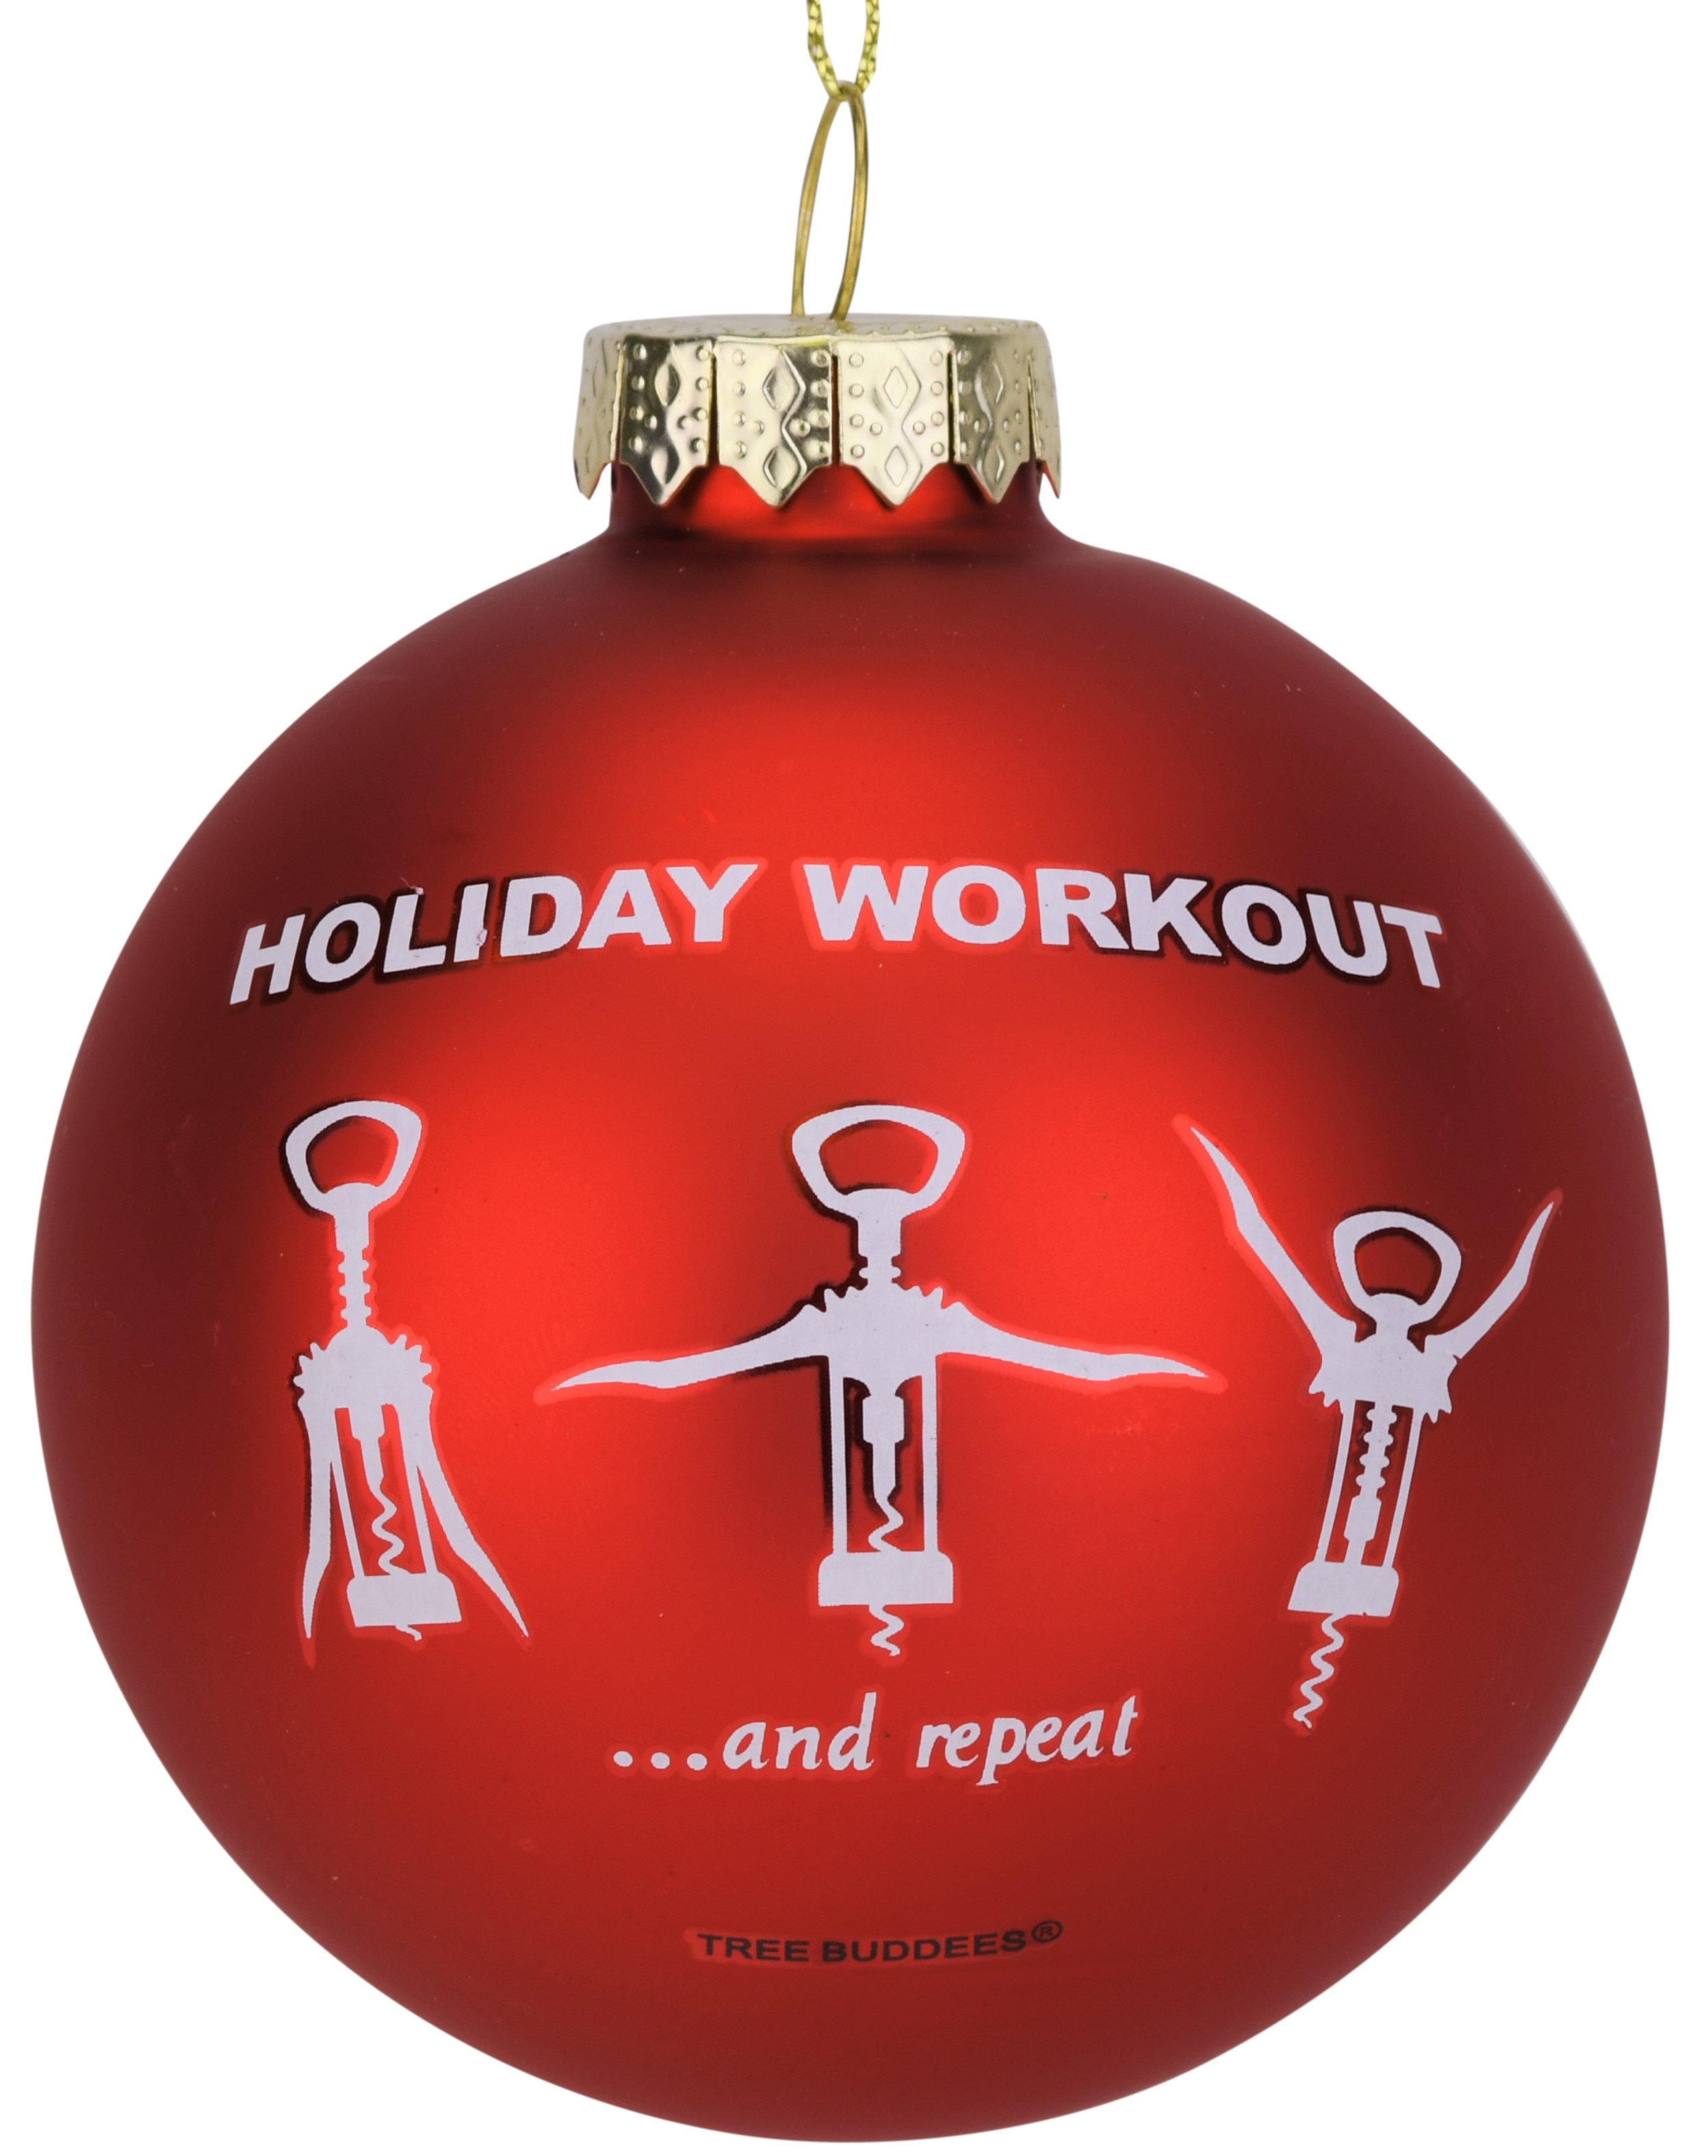 This Is Christmas.Wine Opener Holiday Workout Funny Glass Christmas Ornament Tree Buddees